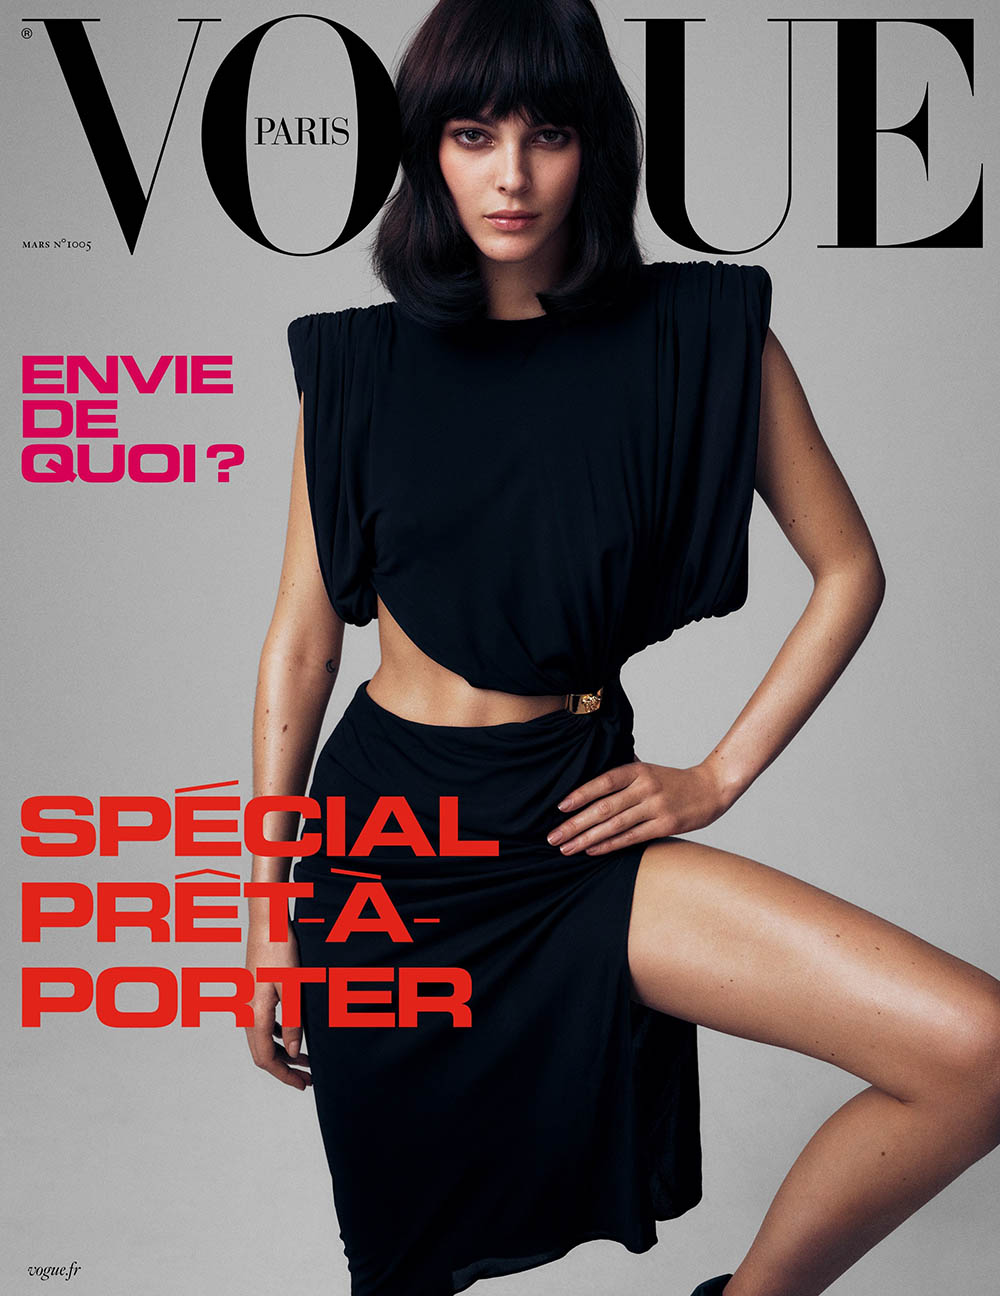 Vittoria Ceretti and Rebecca Leigh Longendyke cover Vogue Paris March 2020 by Mikael Jansson